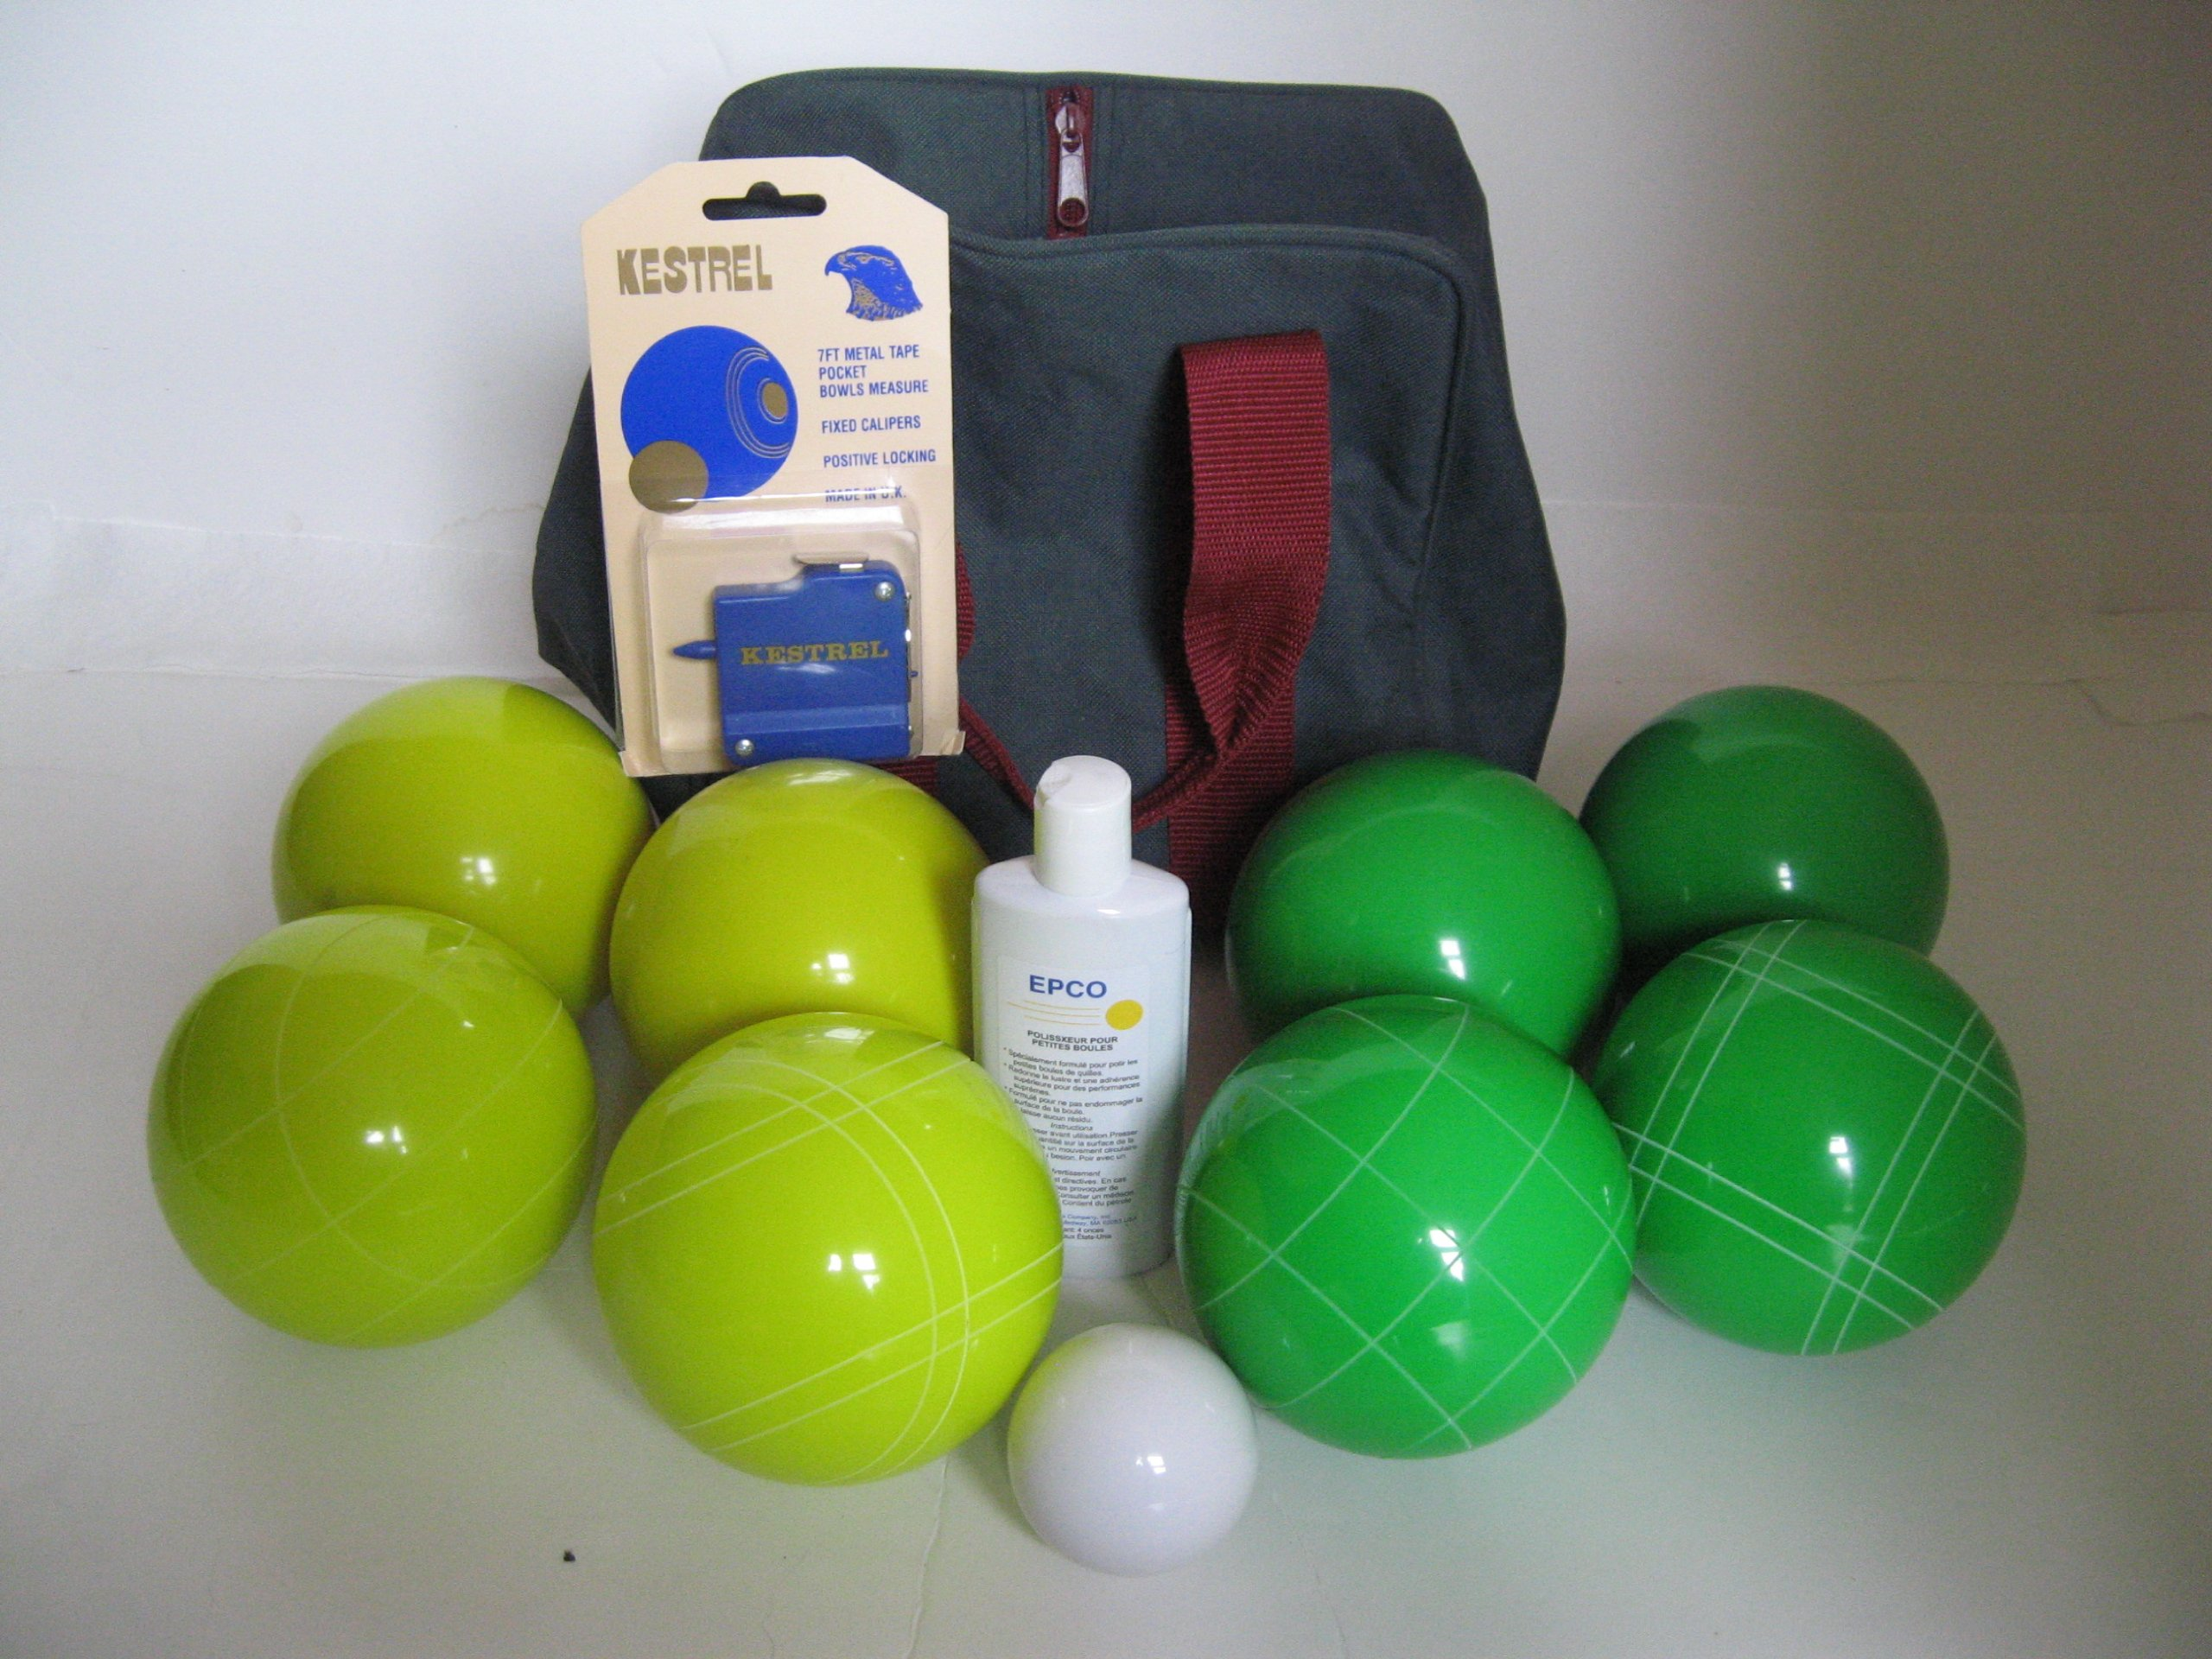 Premium Quality Basic EPCO Bocce package - 110mm Yellow and Green balls, quality nylon bag, m...